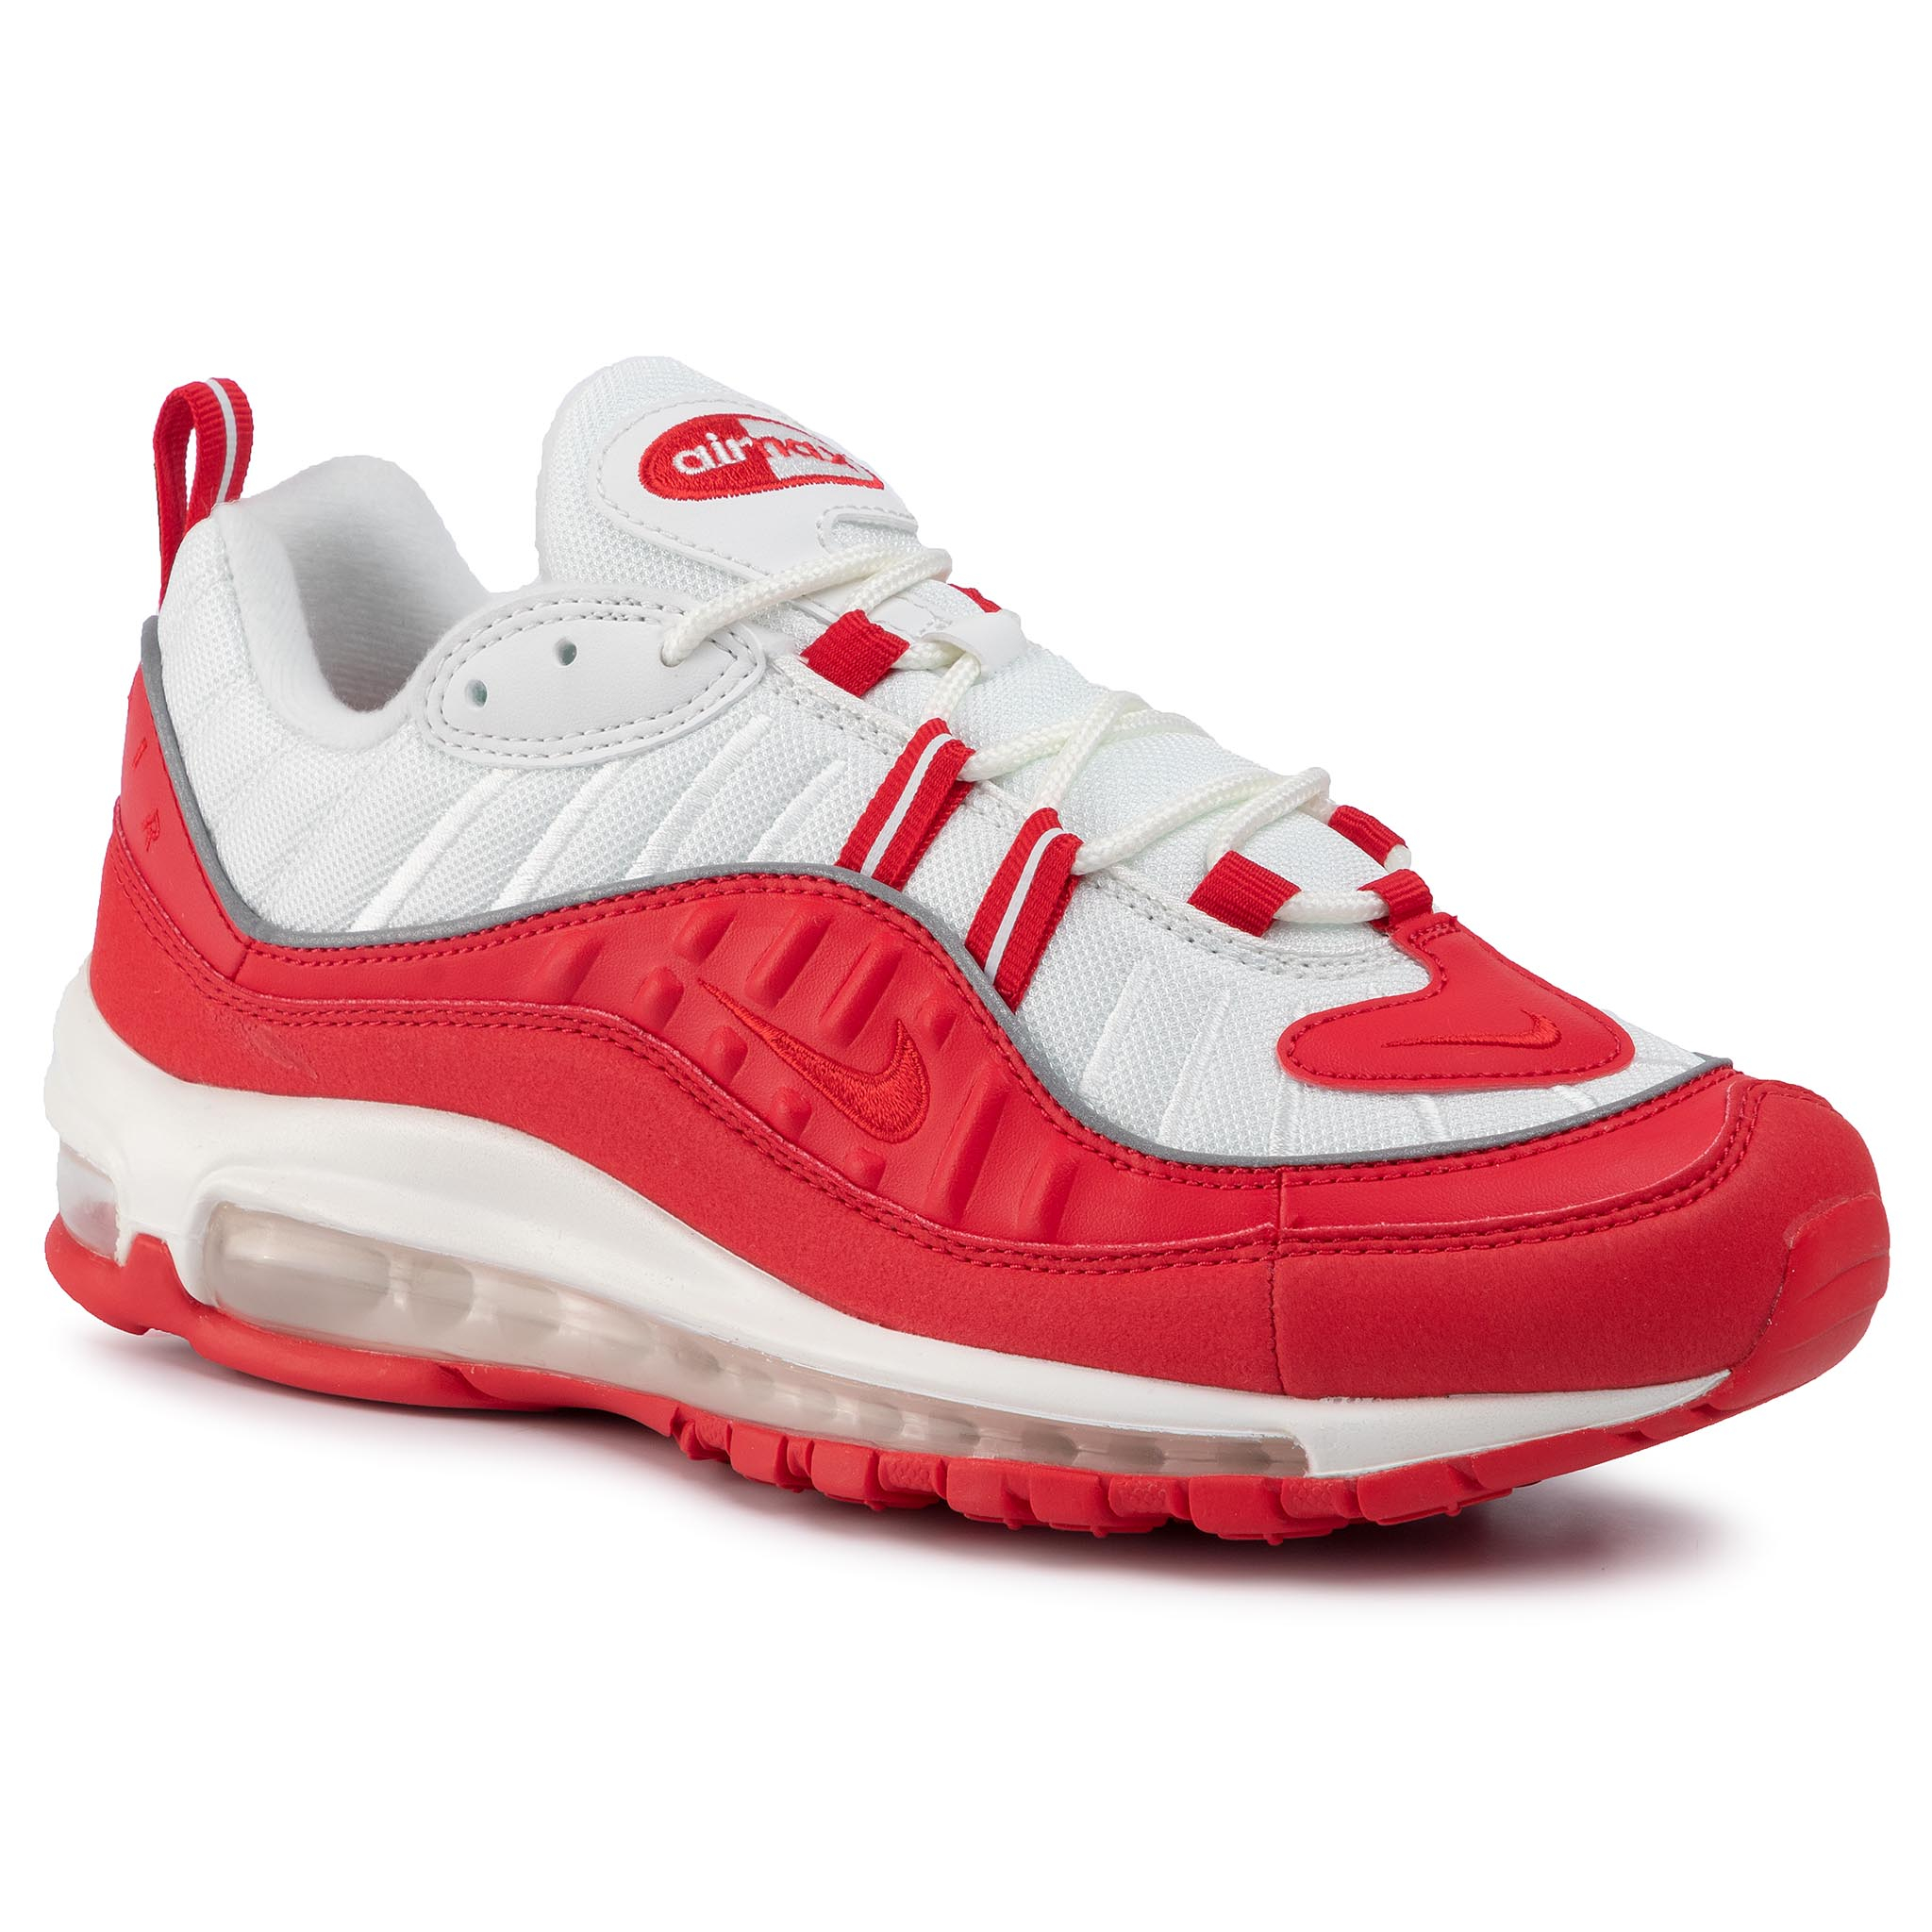 Sneaker Nike Zapatos NIKE - Air Max 98 640744 602 University Red/University Red